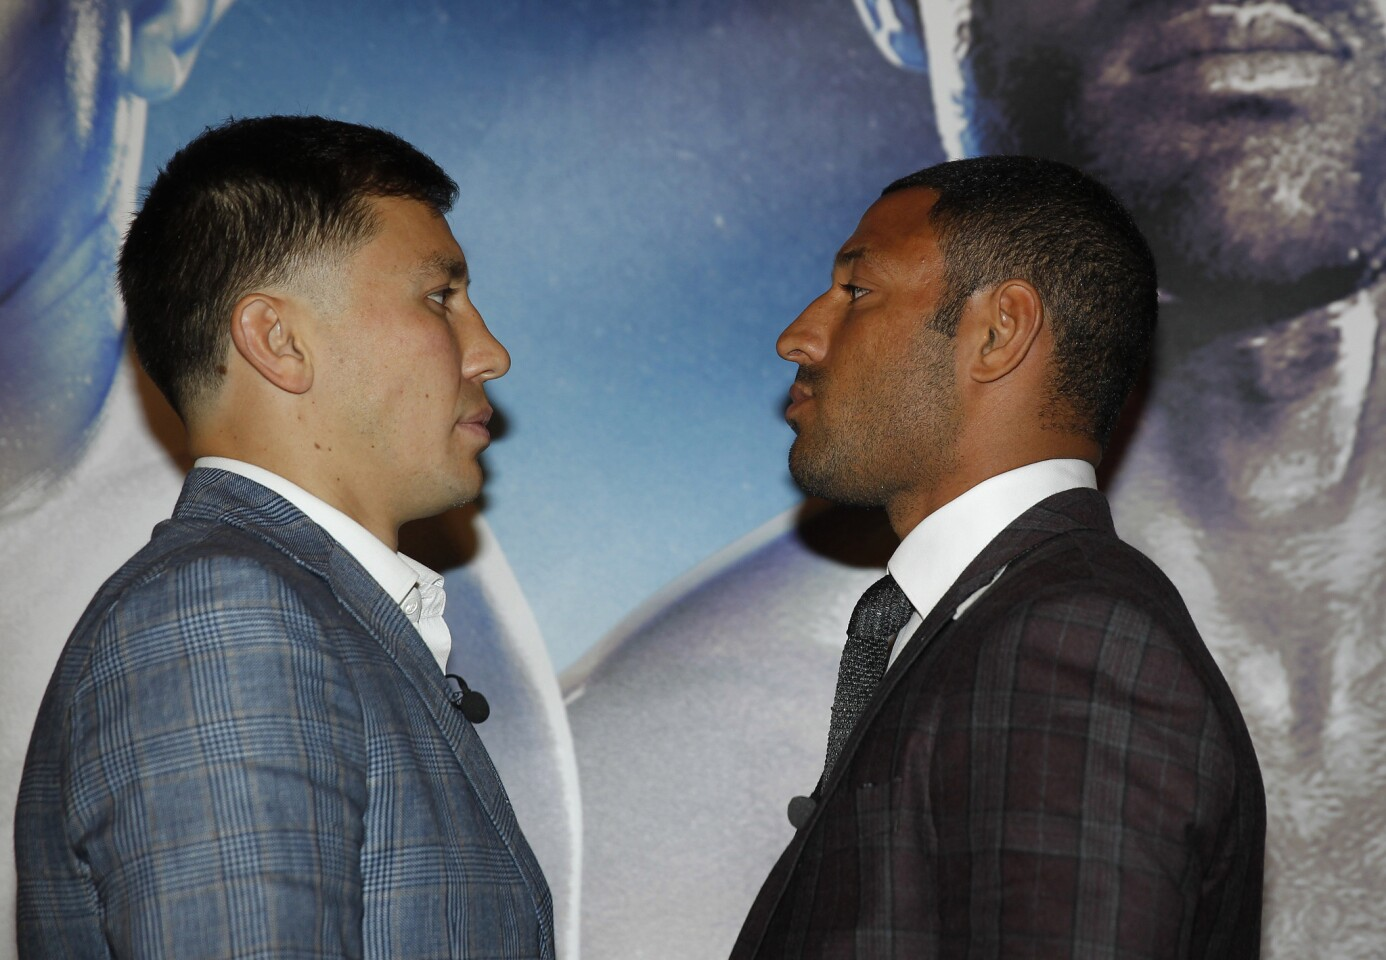 BROOK V GOLOVKIN PRESS CONFERENCE DORCHESTER HOTEL,LONDON PIC;LAWRENCE LUSTIG WORLD MIDDLEWEIGHT TITLE GENNADY GOLVKIN AND KELL BROOK GET TOGETHER TO ANNOUNCE THE FIGHT FOR THE WBA,WBC,IBF AND IBO MIDDLEWEIGHT TITLES AT THE O2 LONDON ON SEPTEMBER 10TH